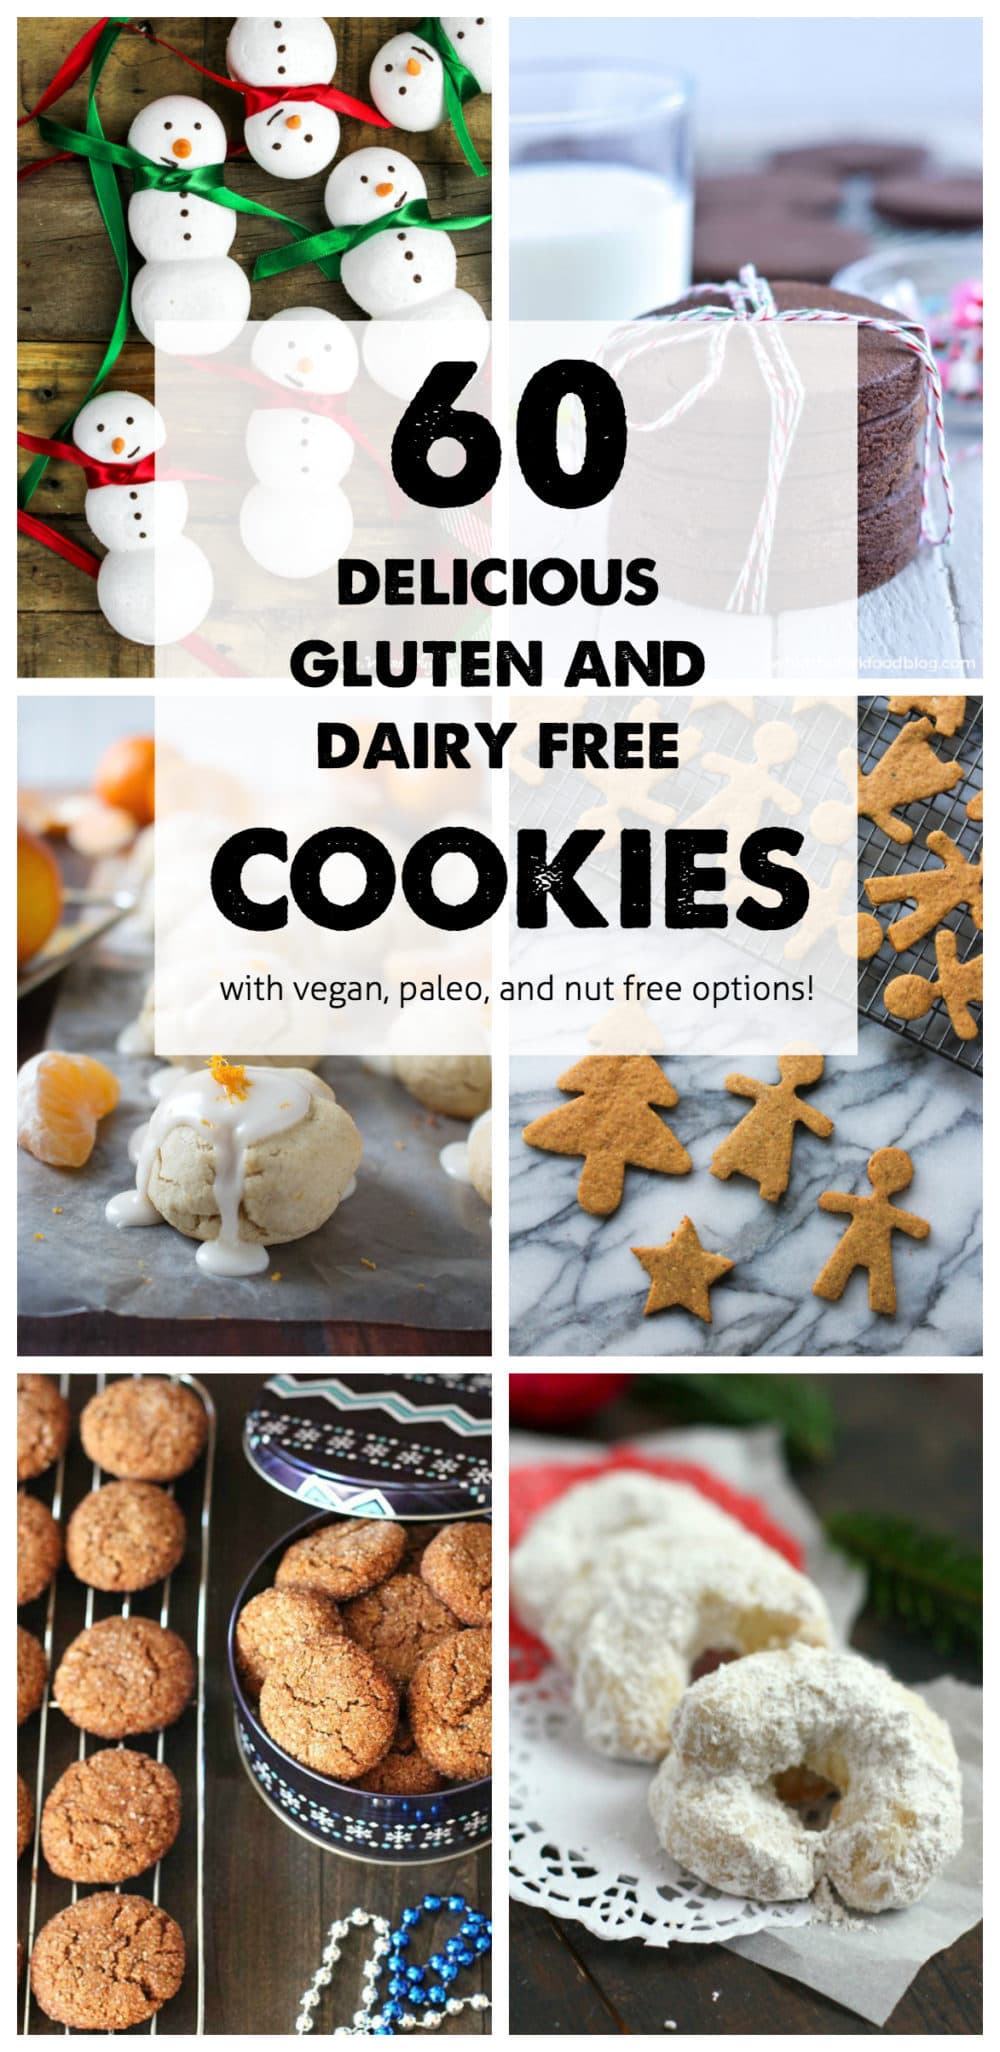 It's been a fun and challenging year, but we've learned a lot along the way! Here's a look at The Fit Cookie's top 10 posts for the year, including this allergy friendly cookies roundup! - @TheFitCookie #cookies #dairyfree #recipe